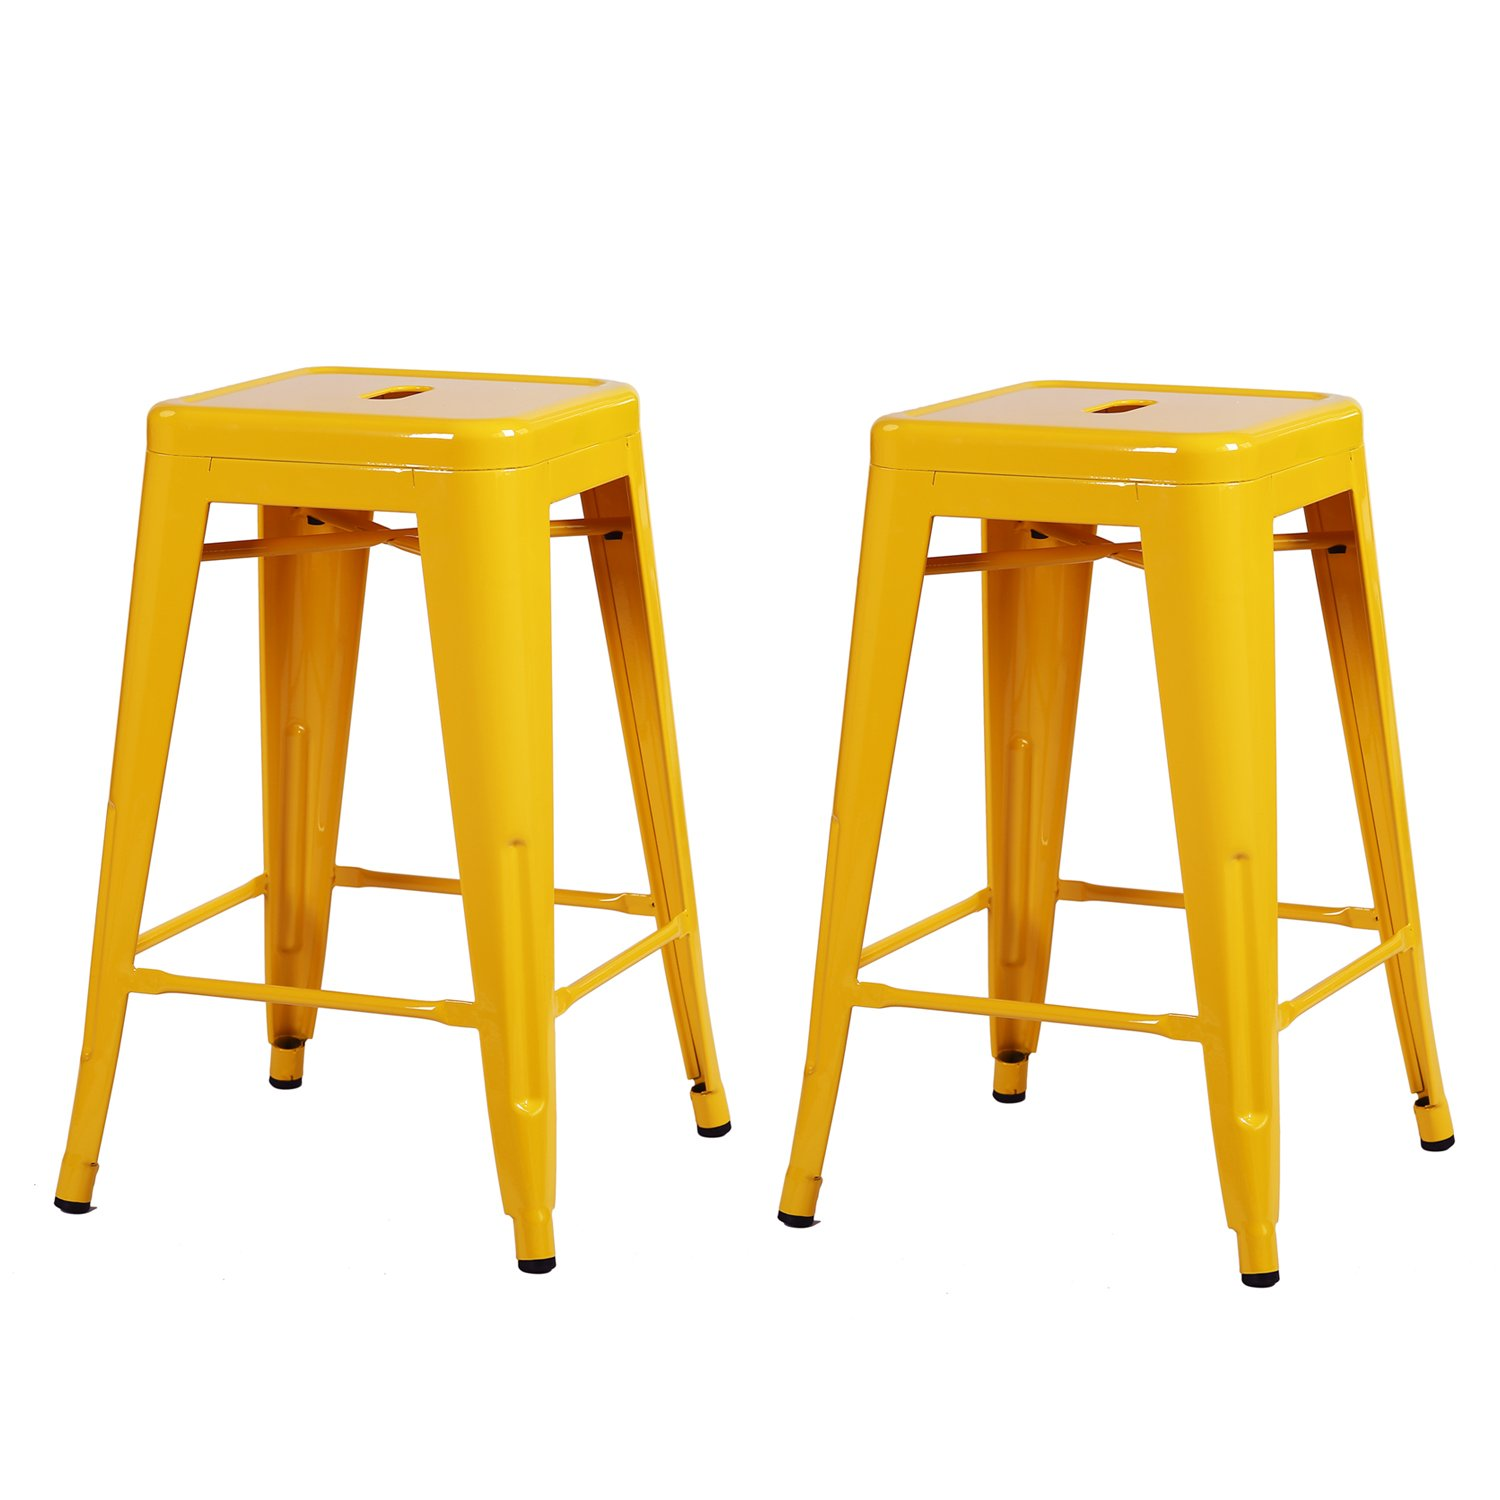 Adeco Yellow 24-inch Metal Tolix Style Chair Glossy